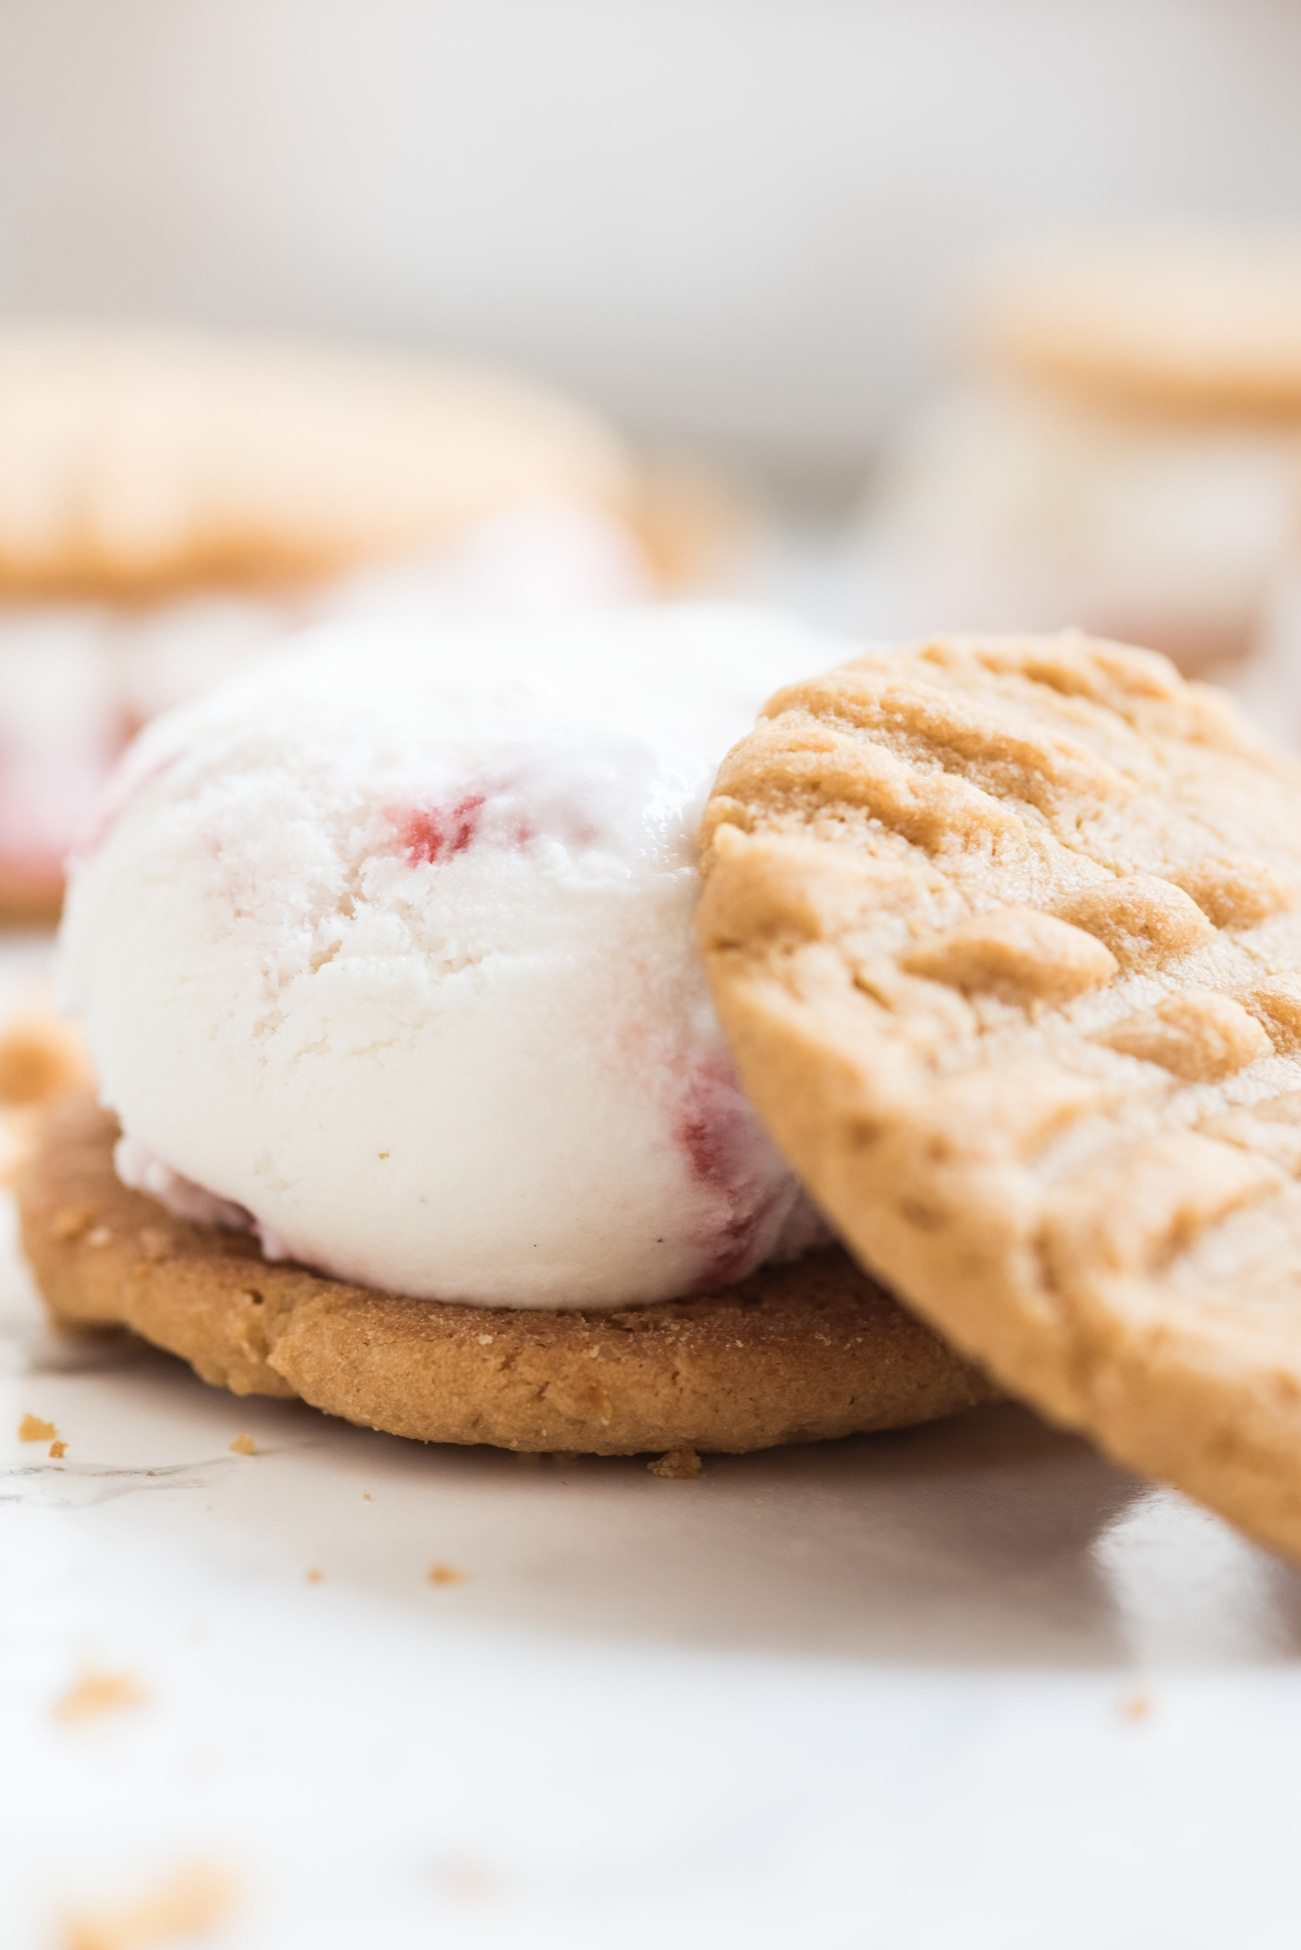 Peanut Butter + Jelly Ice Cream Sandwiches | Summer desserts, homemade ice cream sandwiches, entertaining tips, party ideas and more from @cydconverse